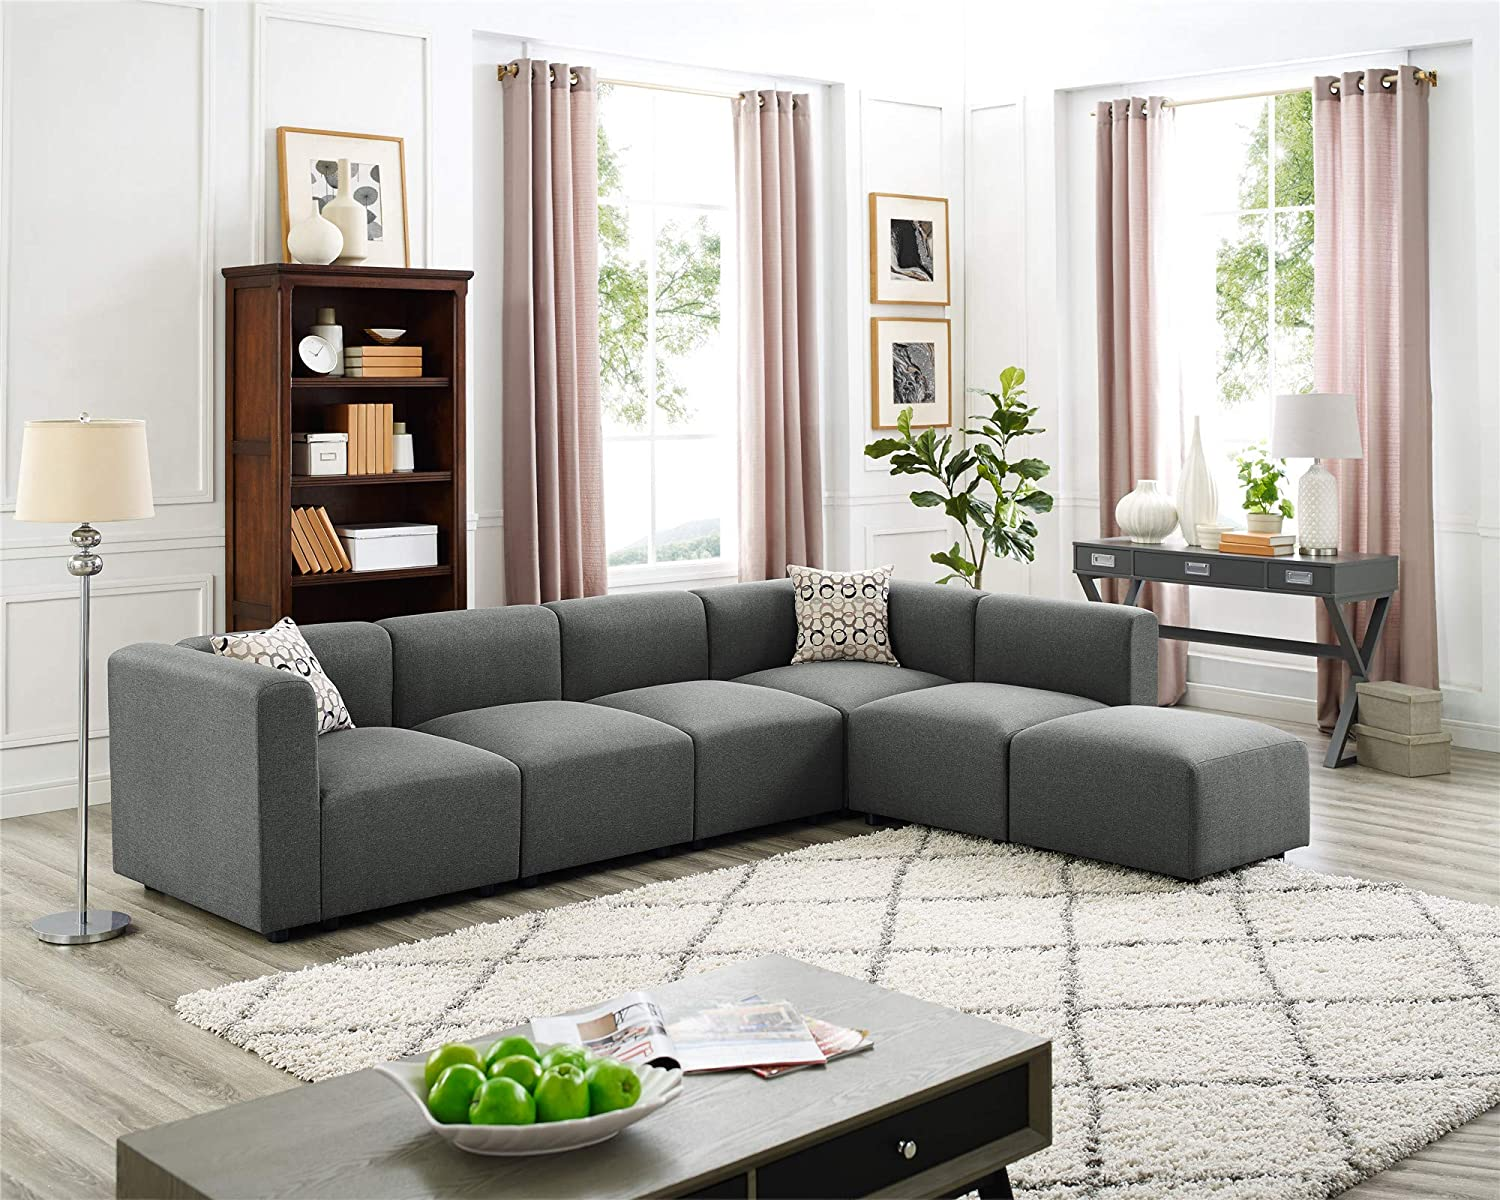 Swell Amazon Com Four Seat Sofas With Combination Chaise Longue Download Free Architecture Designs Xaembritishbridgeorg